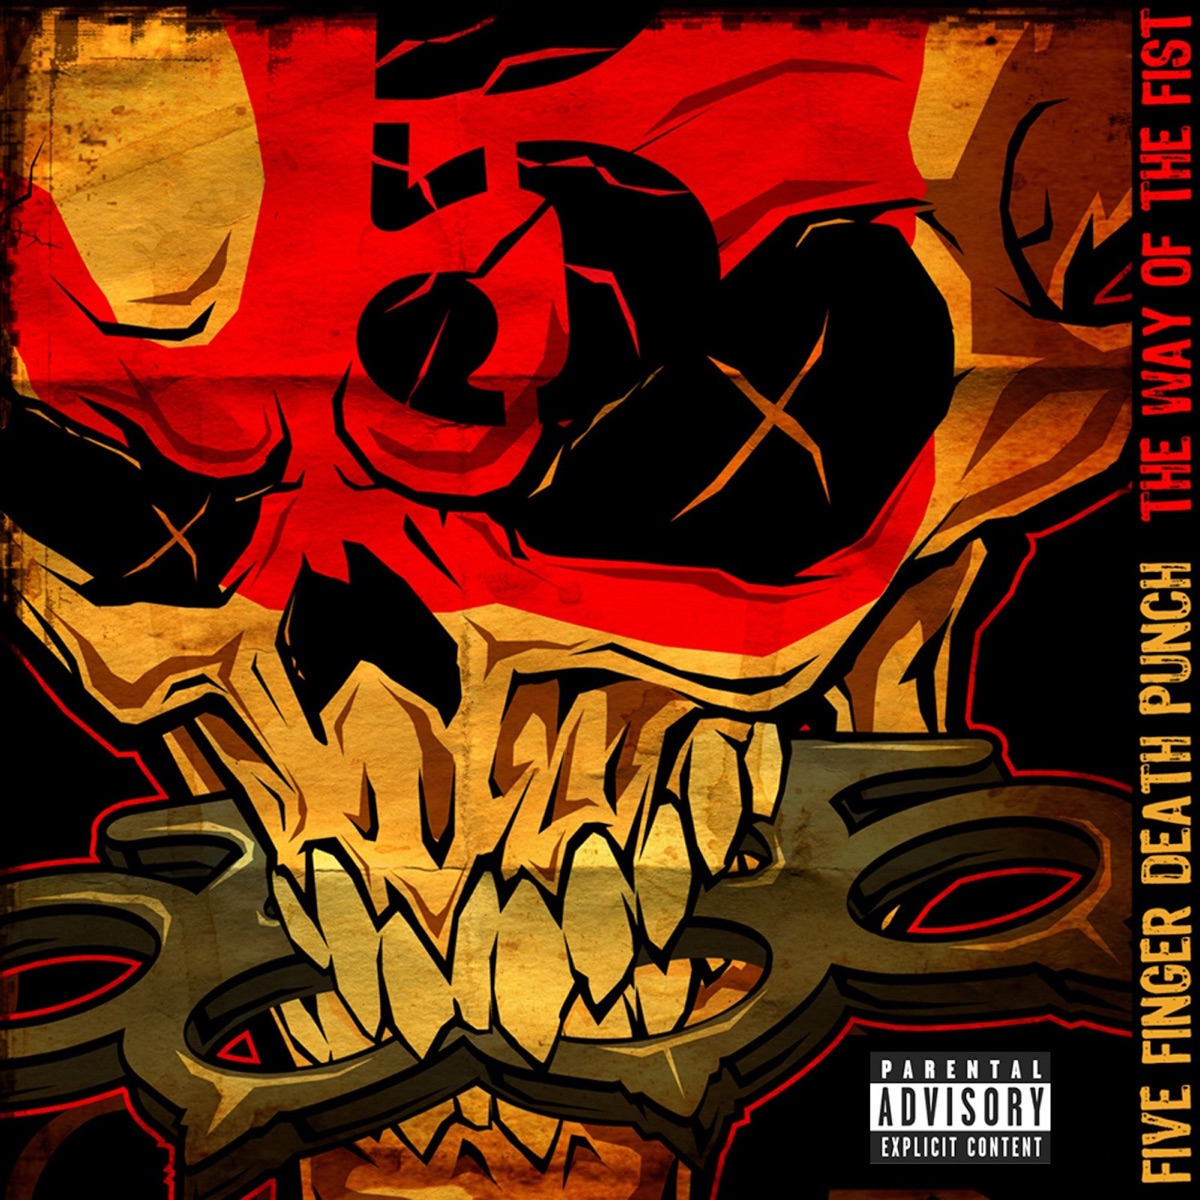 The Way of the Fist Five Finger Death Punch CD cover